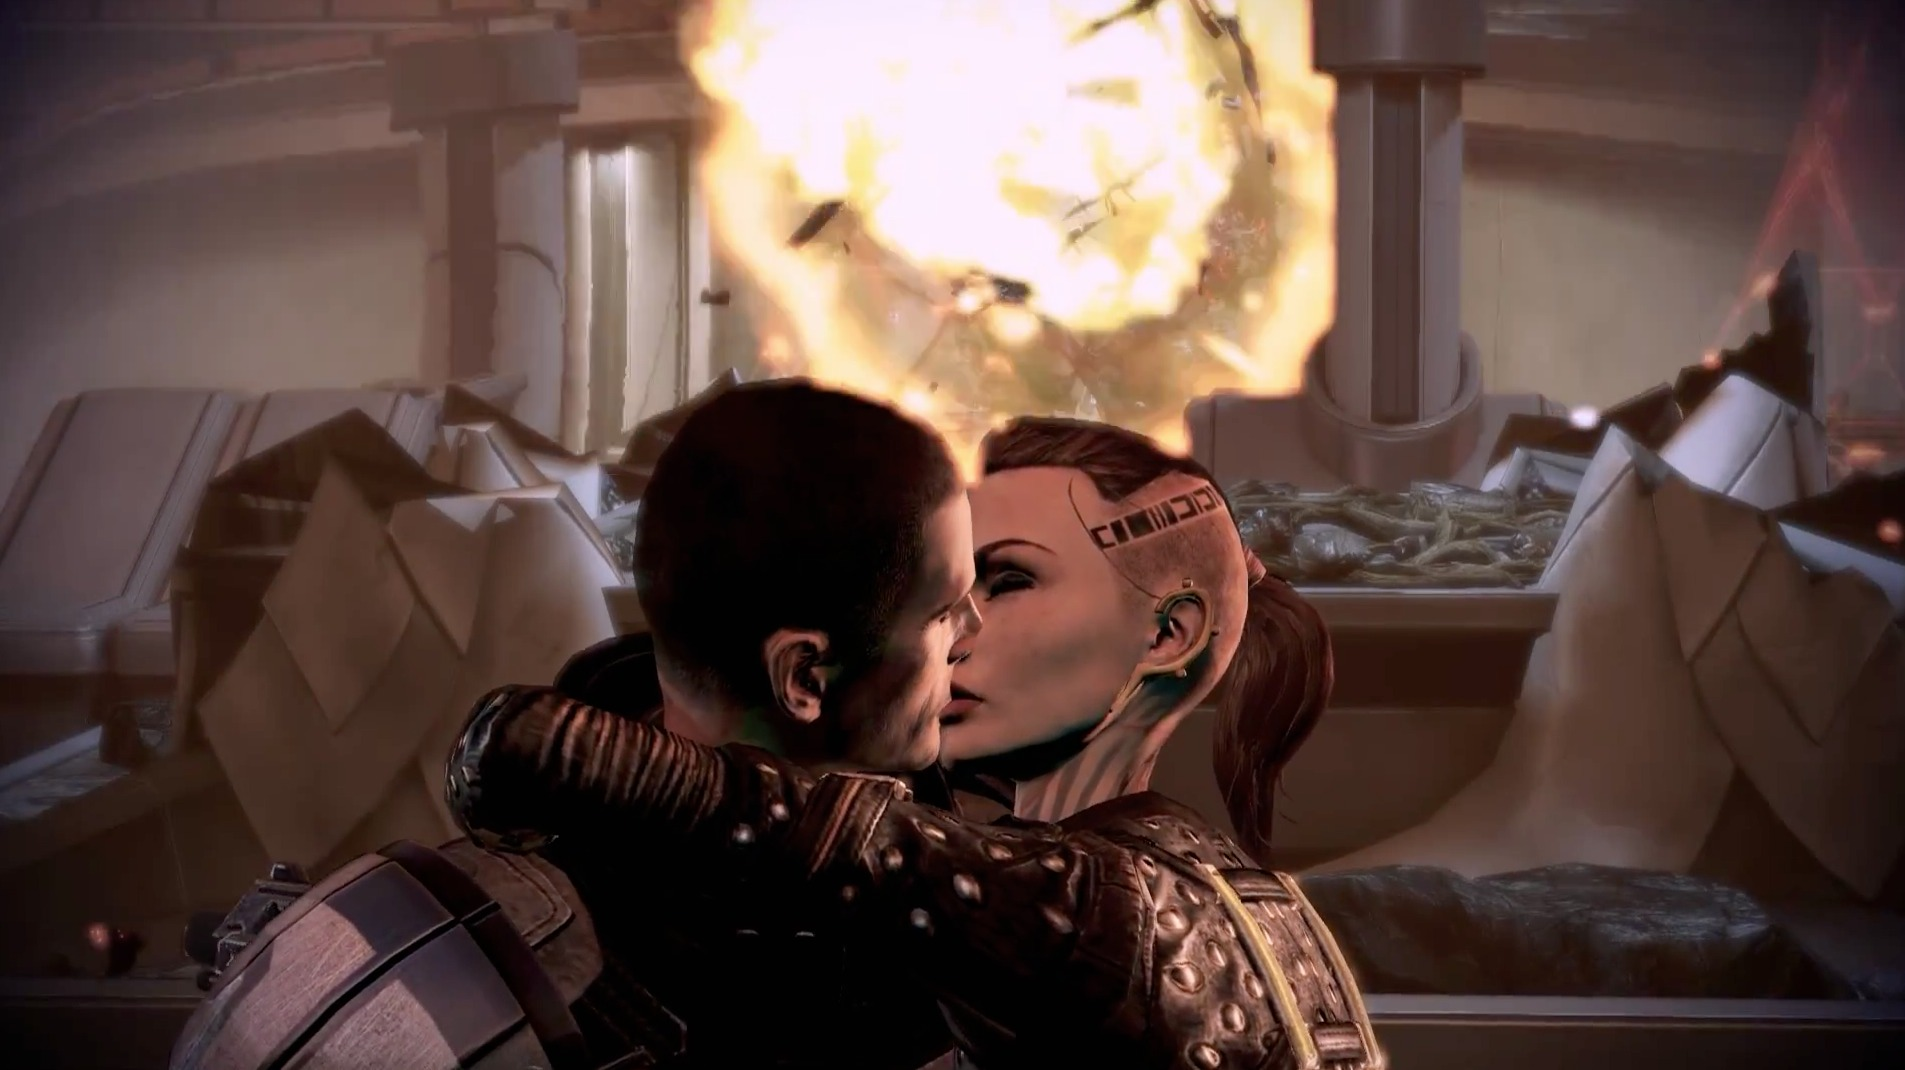 Cool guys don't look at explosions. They kiss their girls as they turn away.